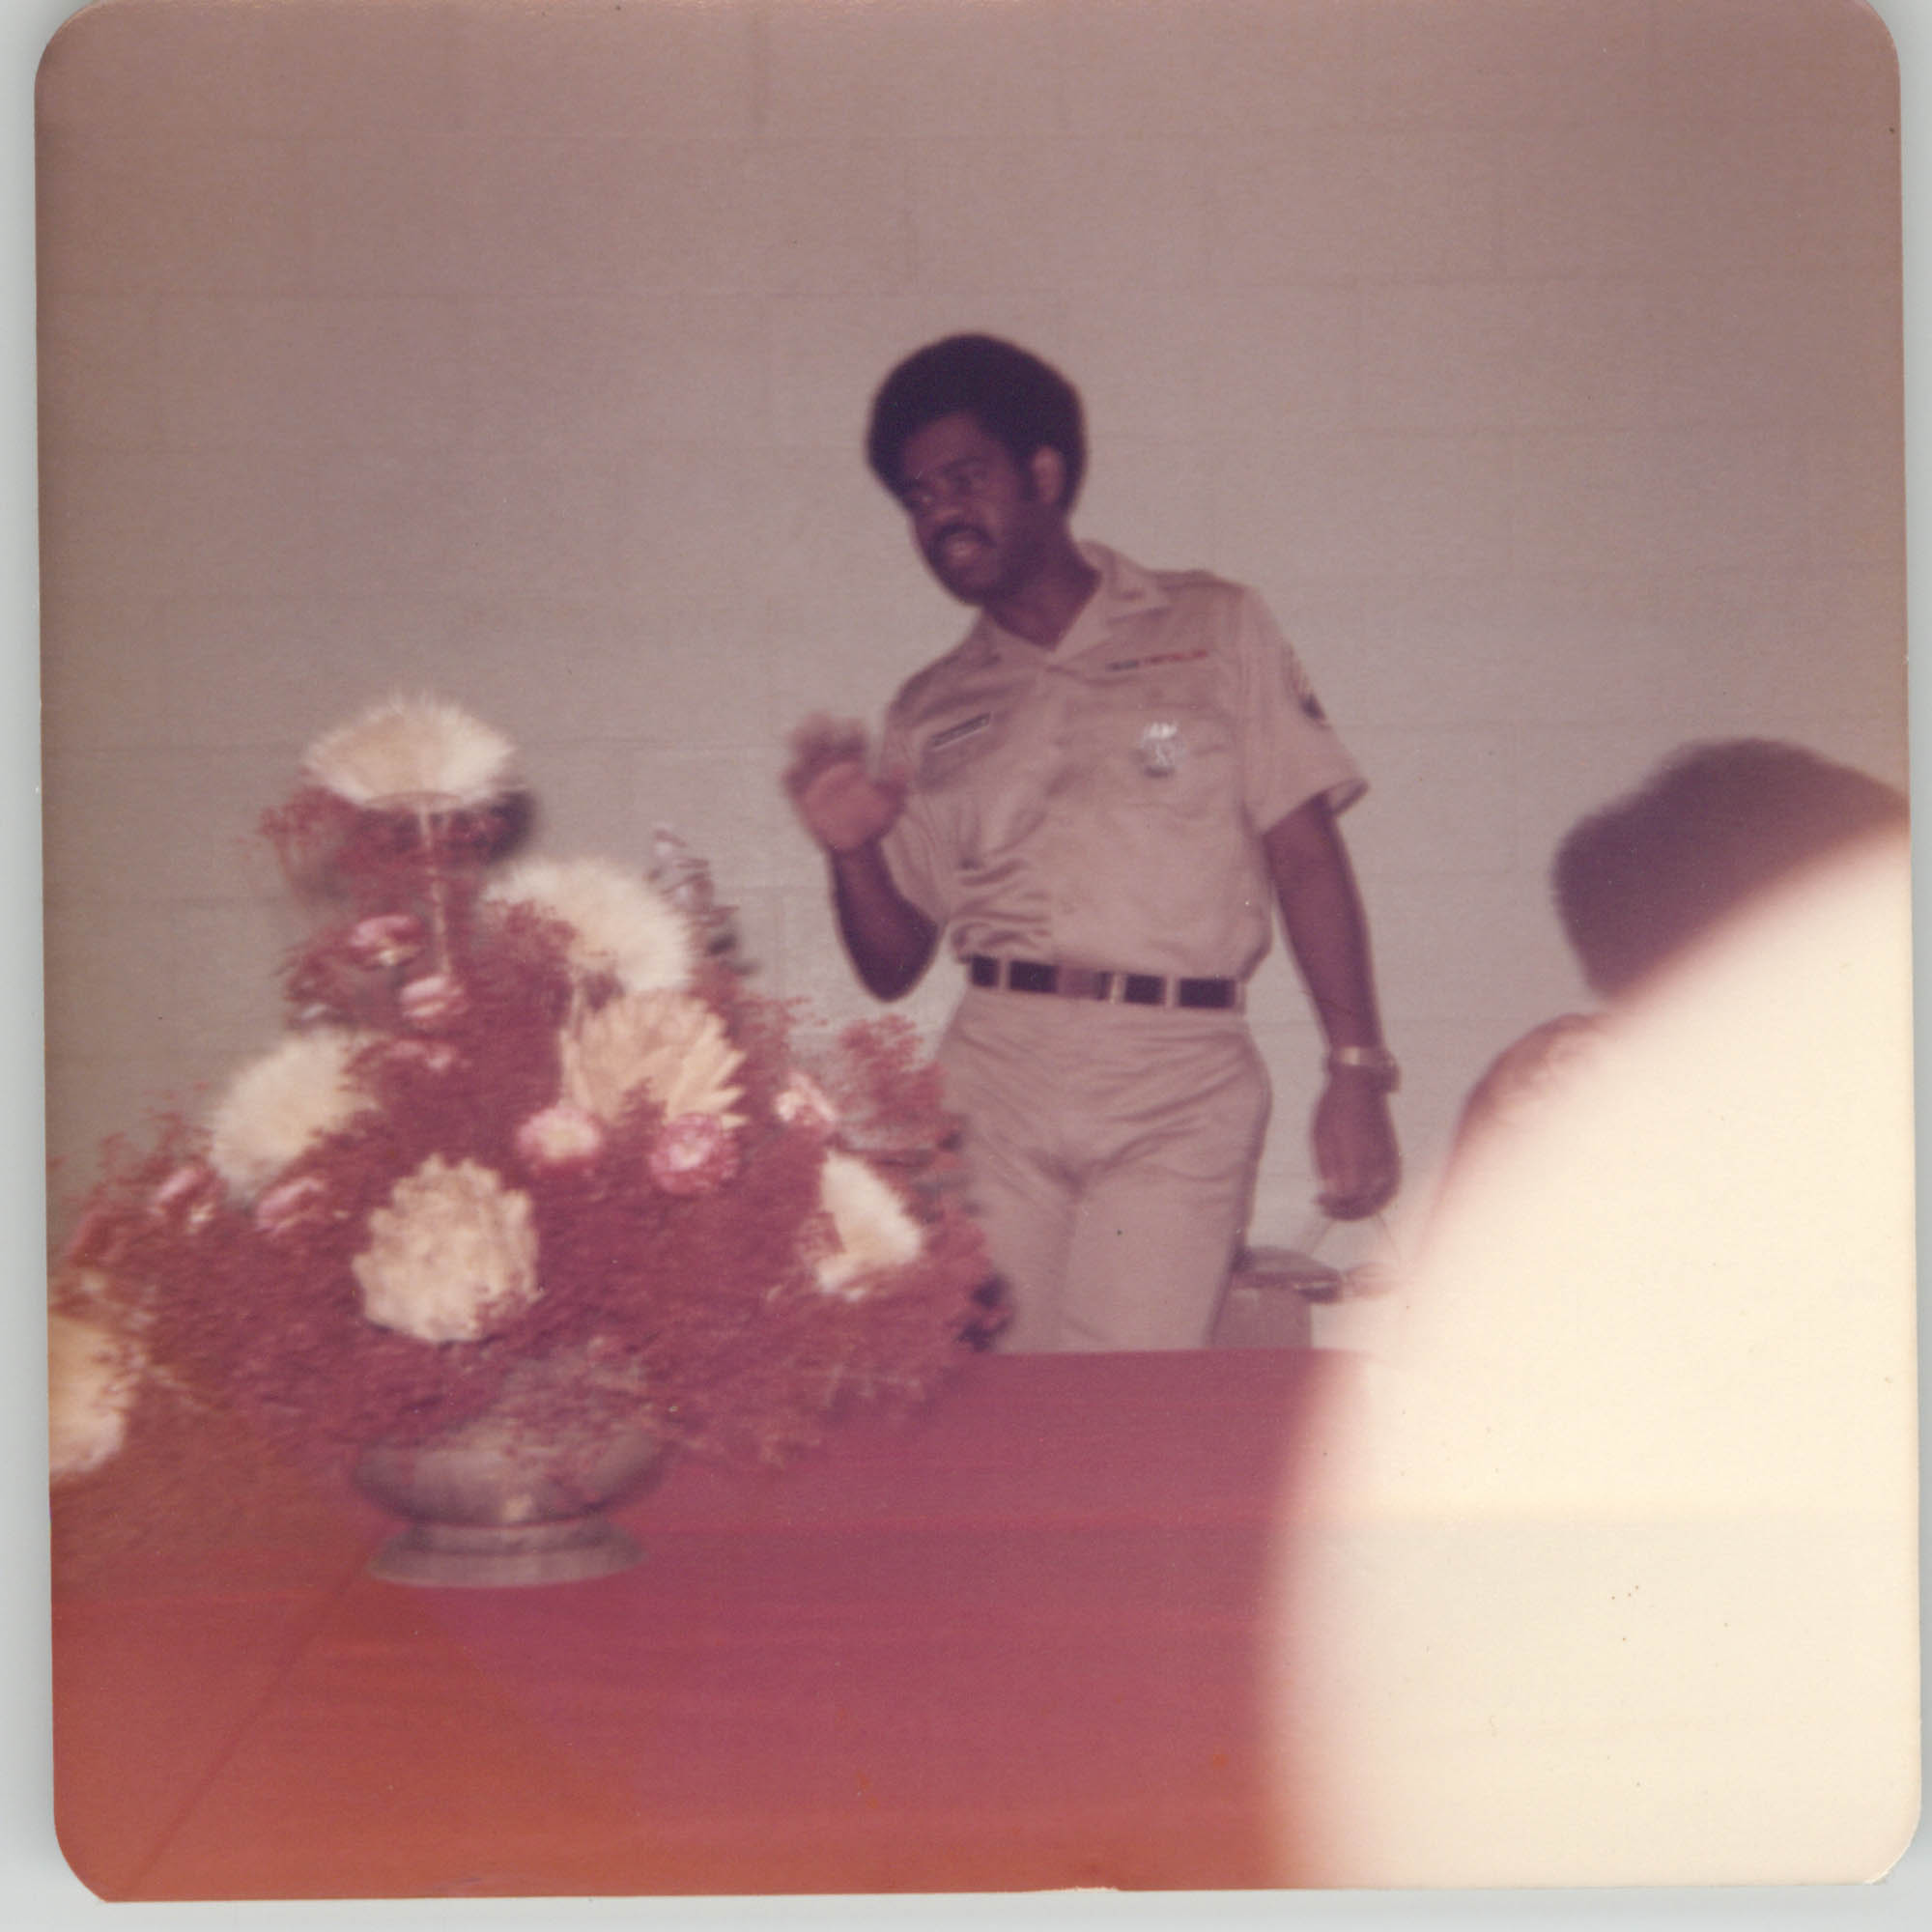 Photograph of a Police Officer